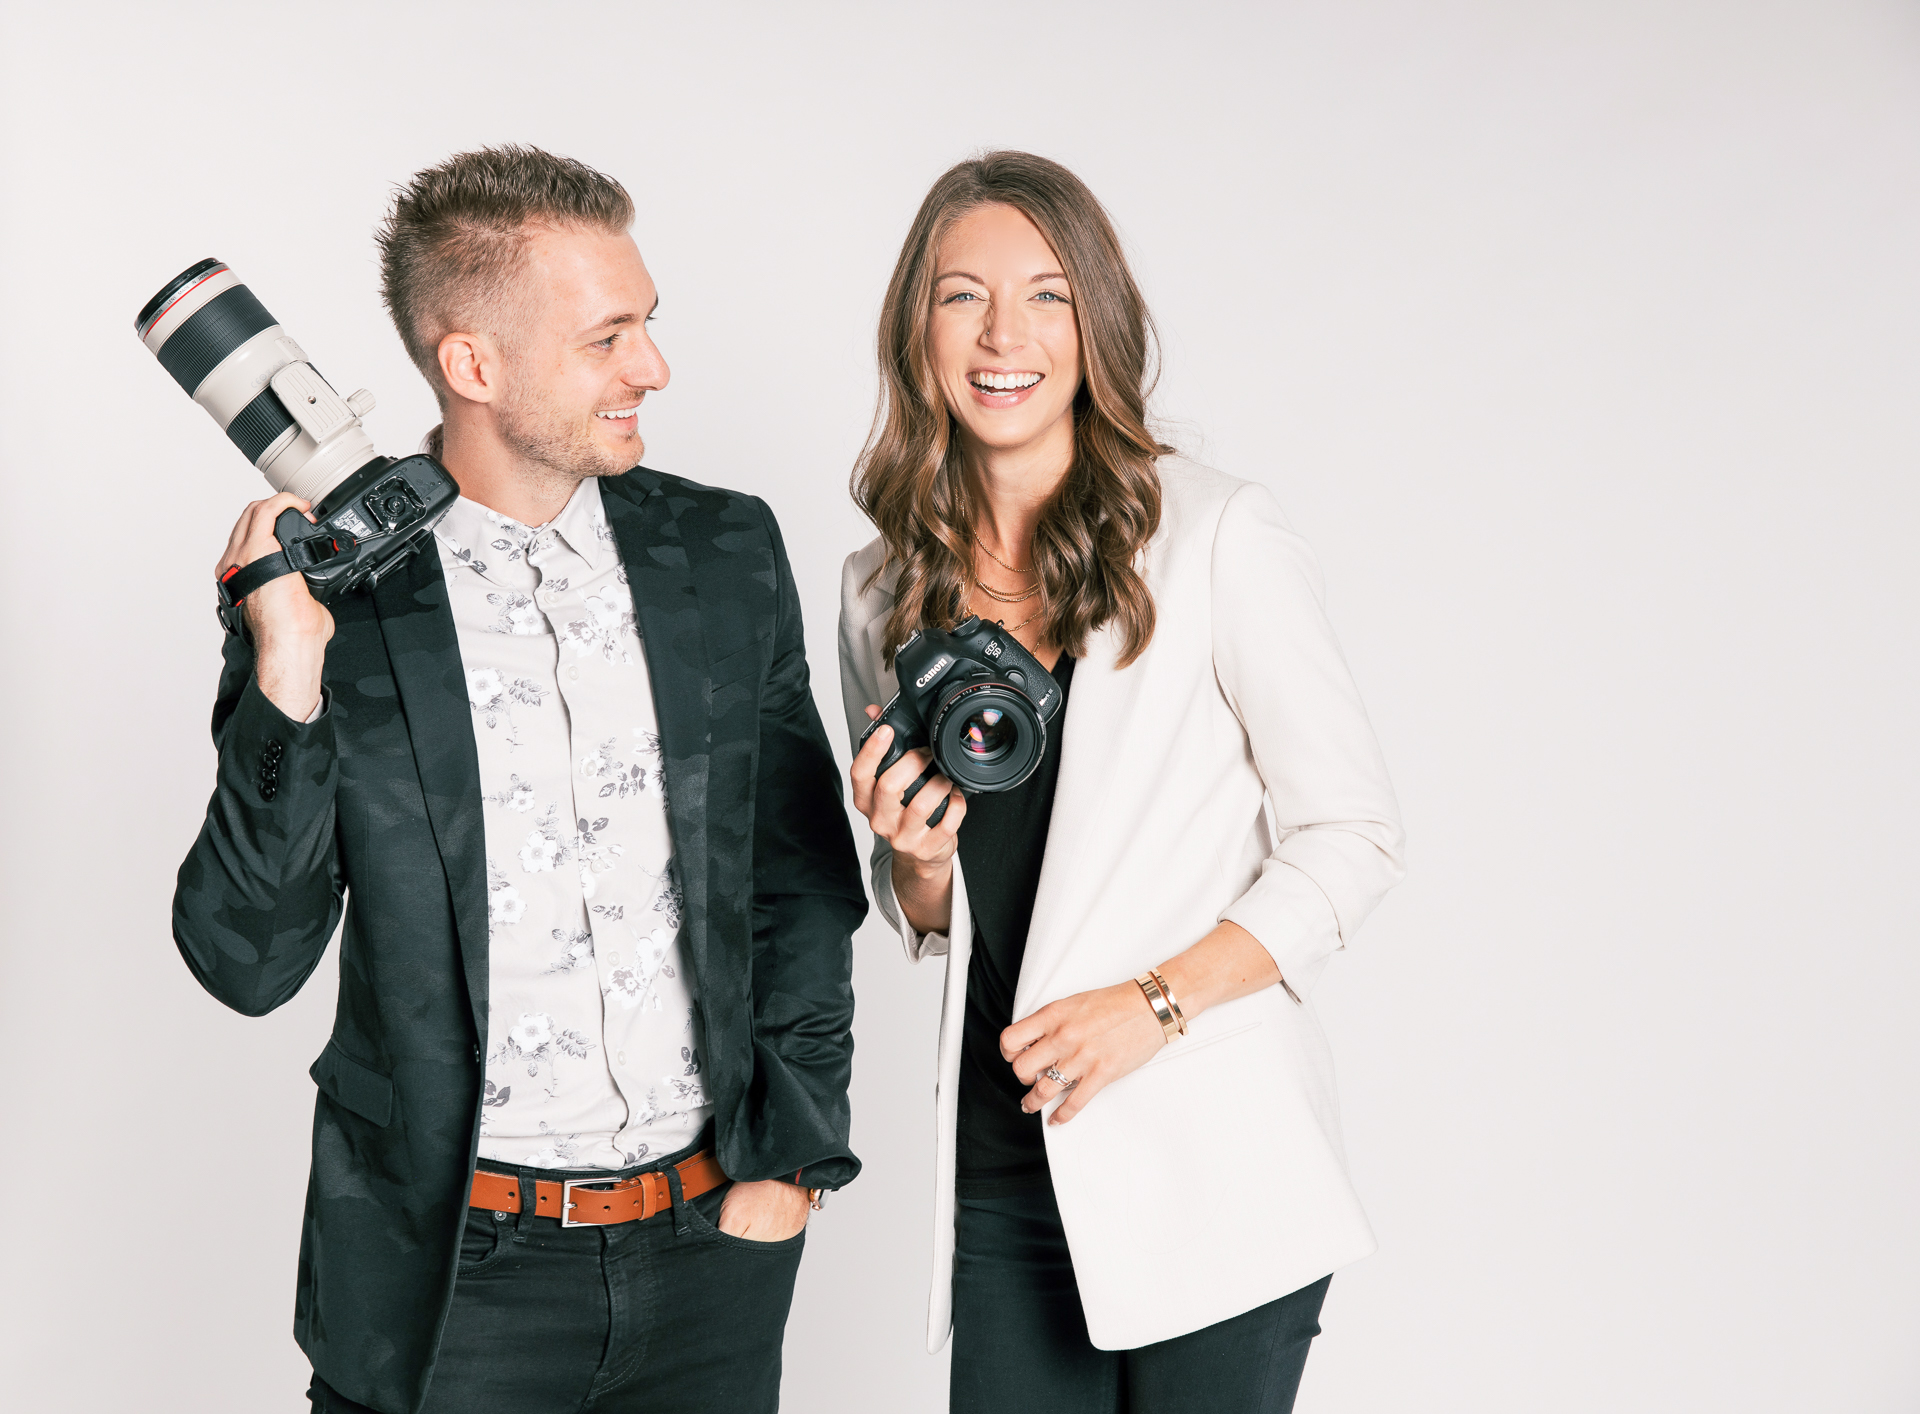 Kaleb and Becky Dean, Owners and Founders of Pen and Lens in Ray Ban Sunglasses